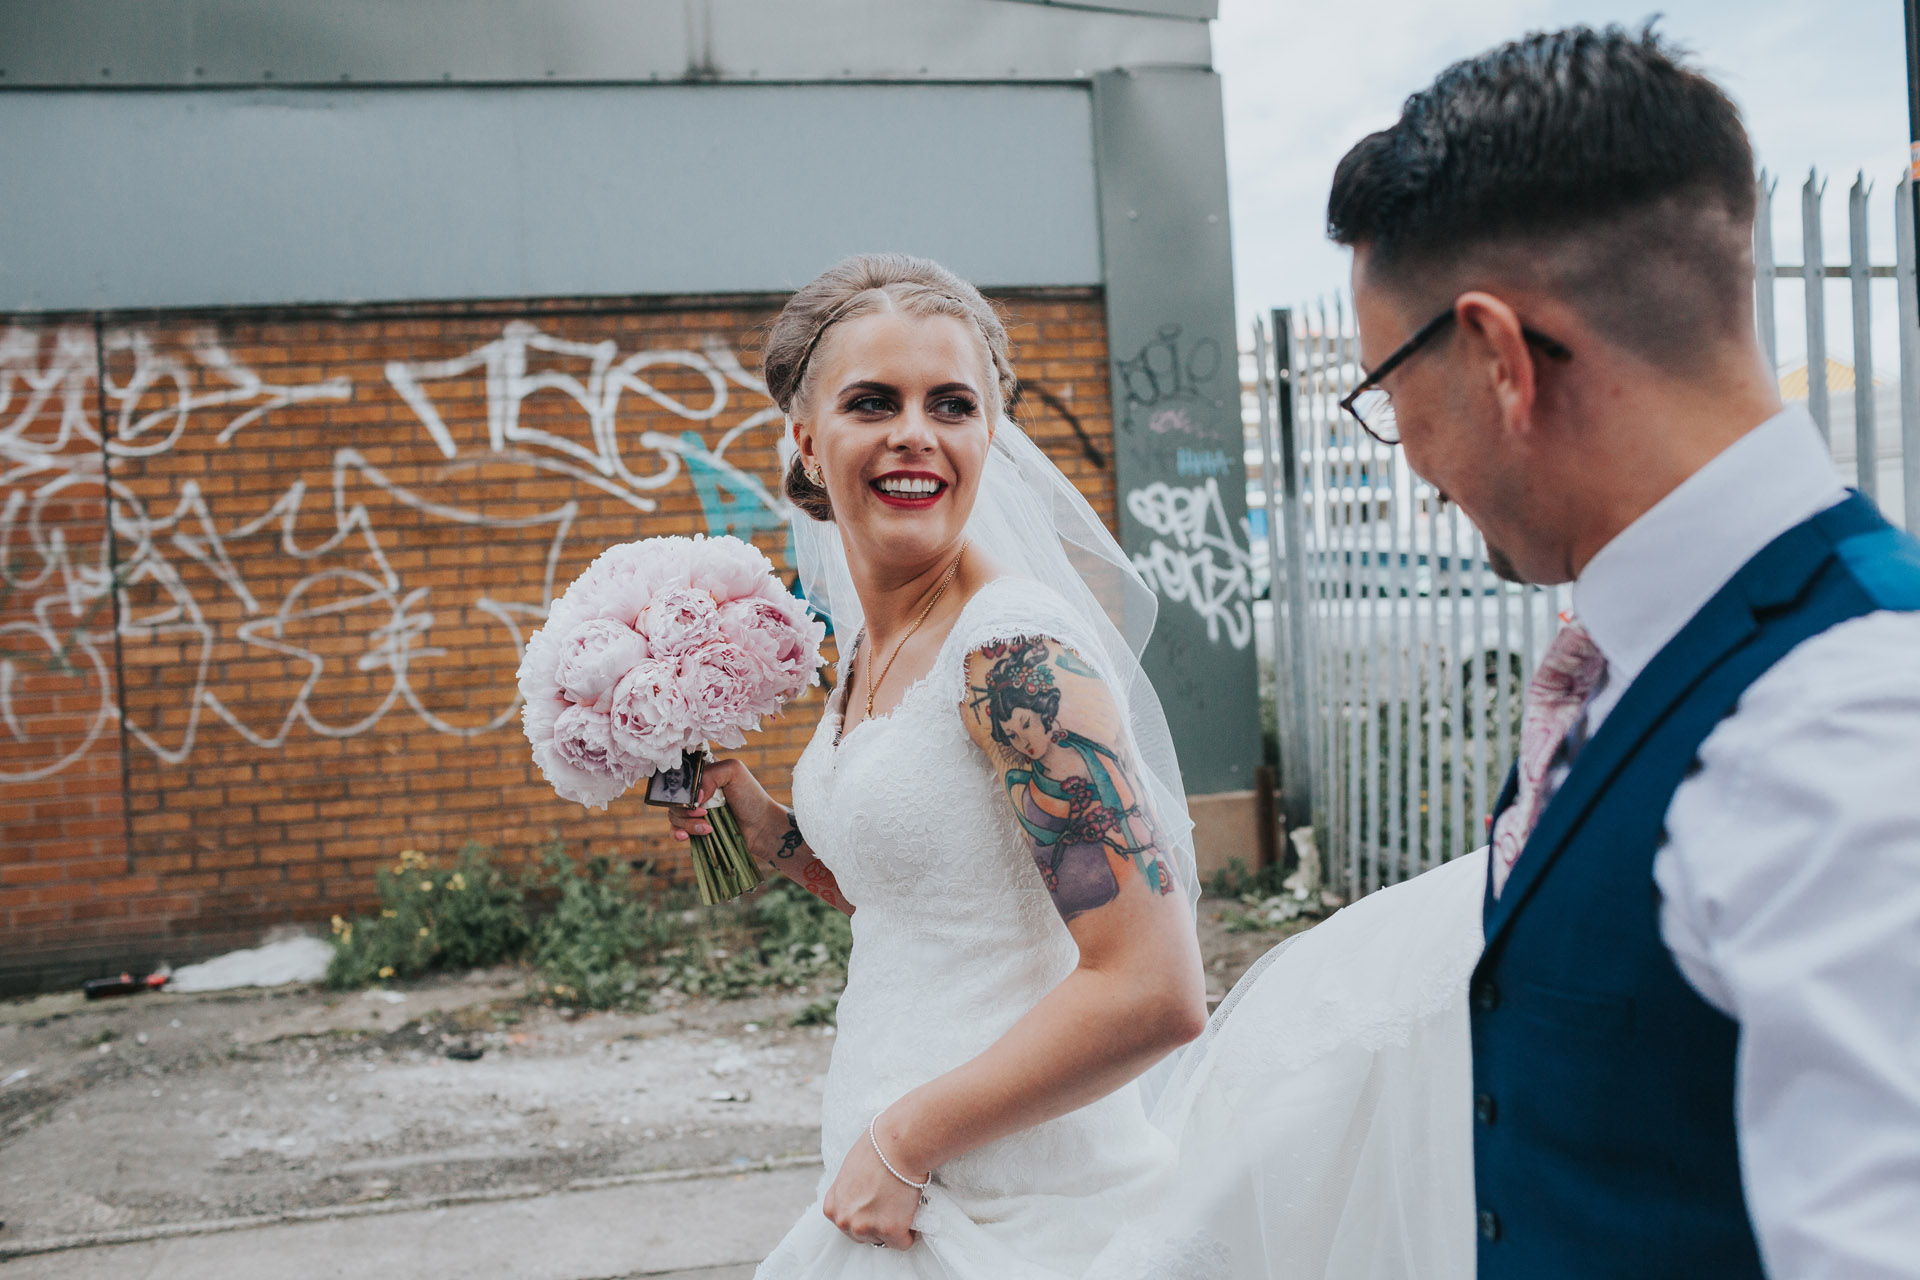 Bride looks to Groom as they walk through Manchester. Graffiti tags in back ground.